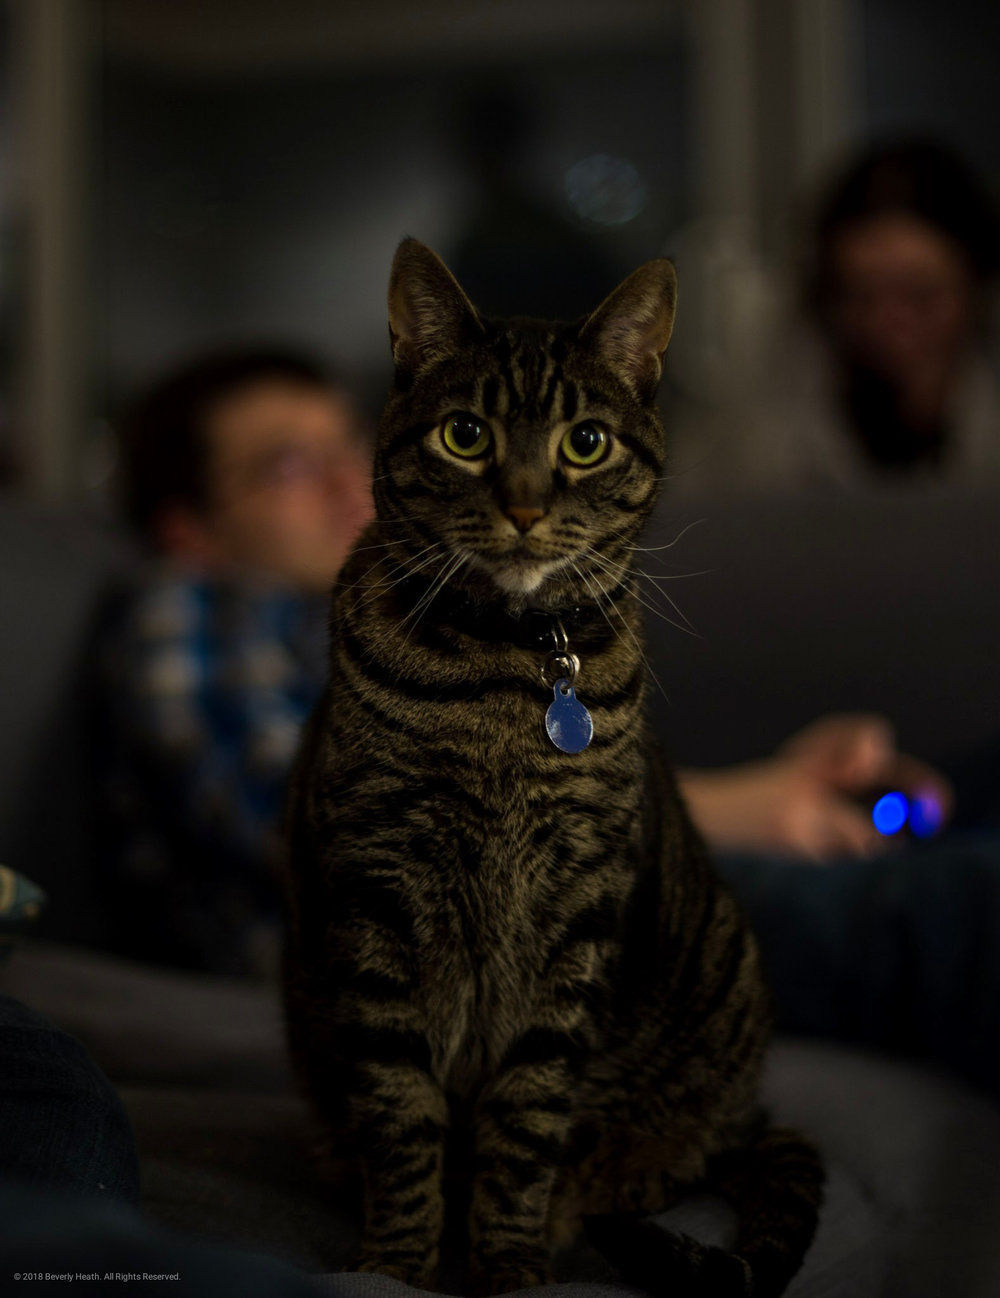 This cat is so handsome.